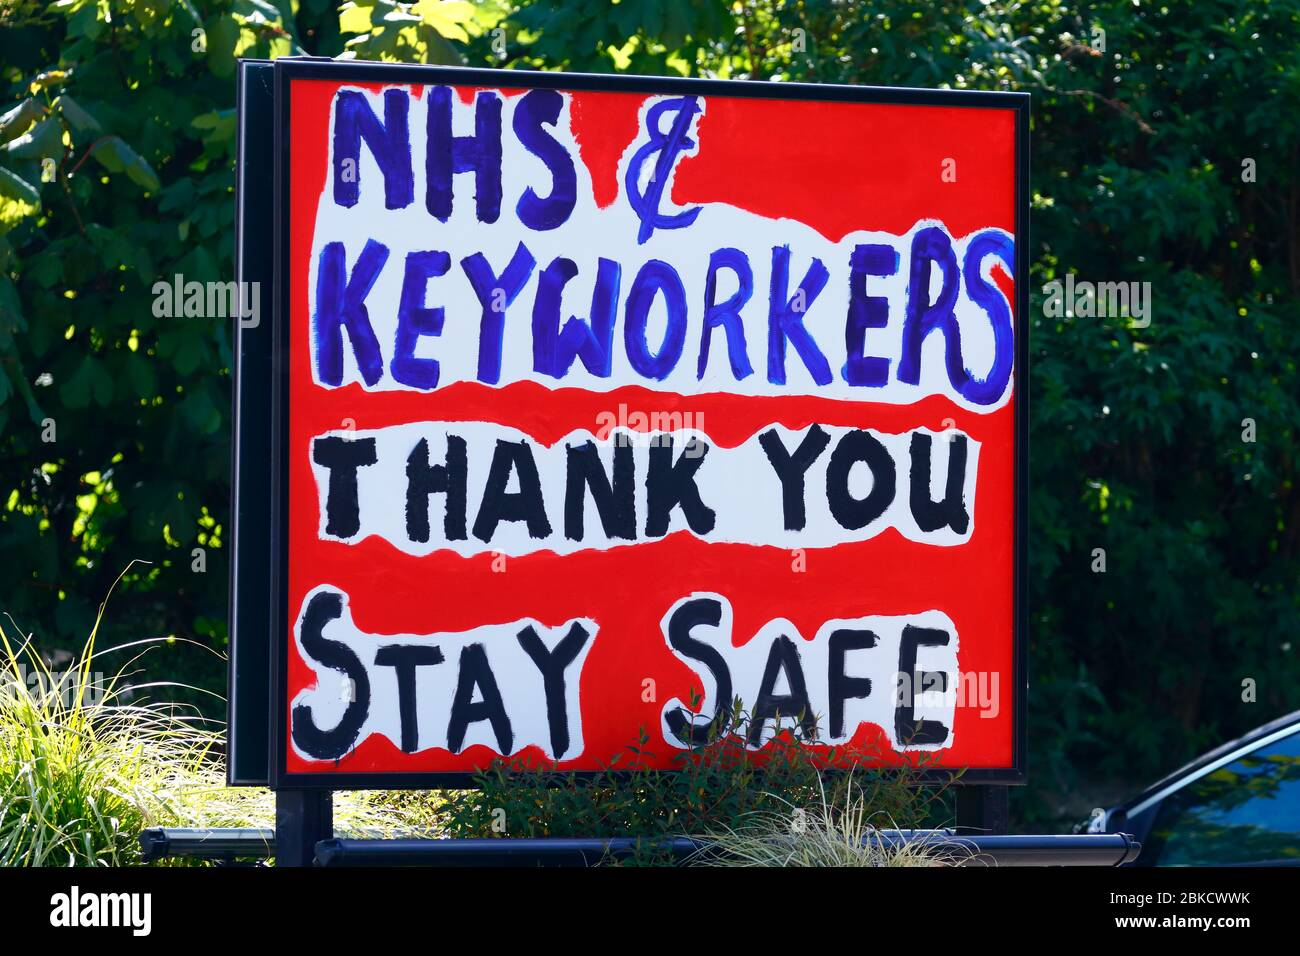 Messgaes outside the Gasgoigne Public House in Garforth showing their support for the NHS & Key Workers during the cornavirus outbreak. Stock Photo